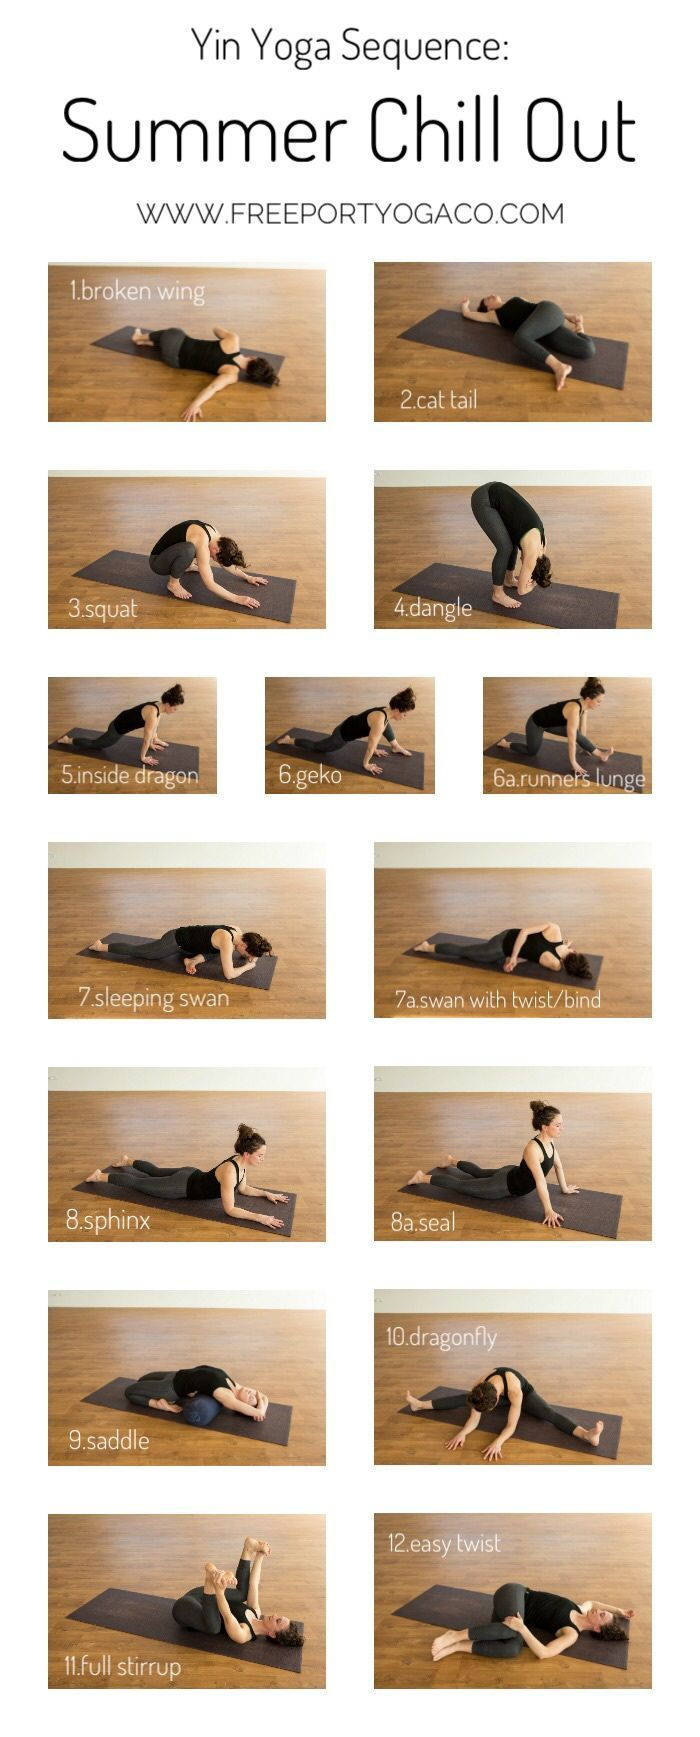 Yin Yoga Sequence: Summer Chill Out - Freeport Yoga Co